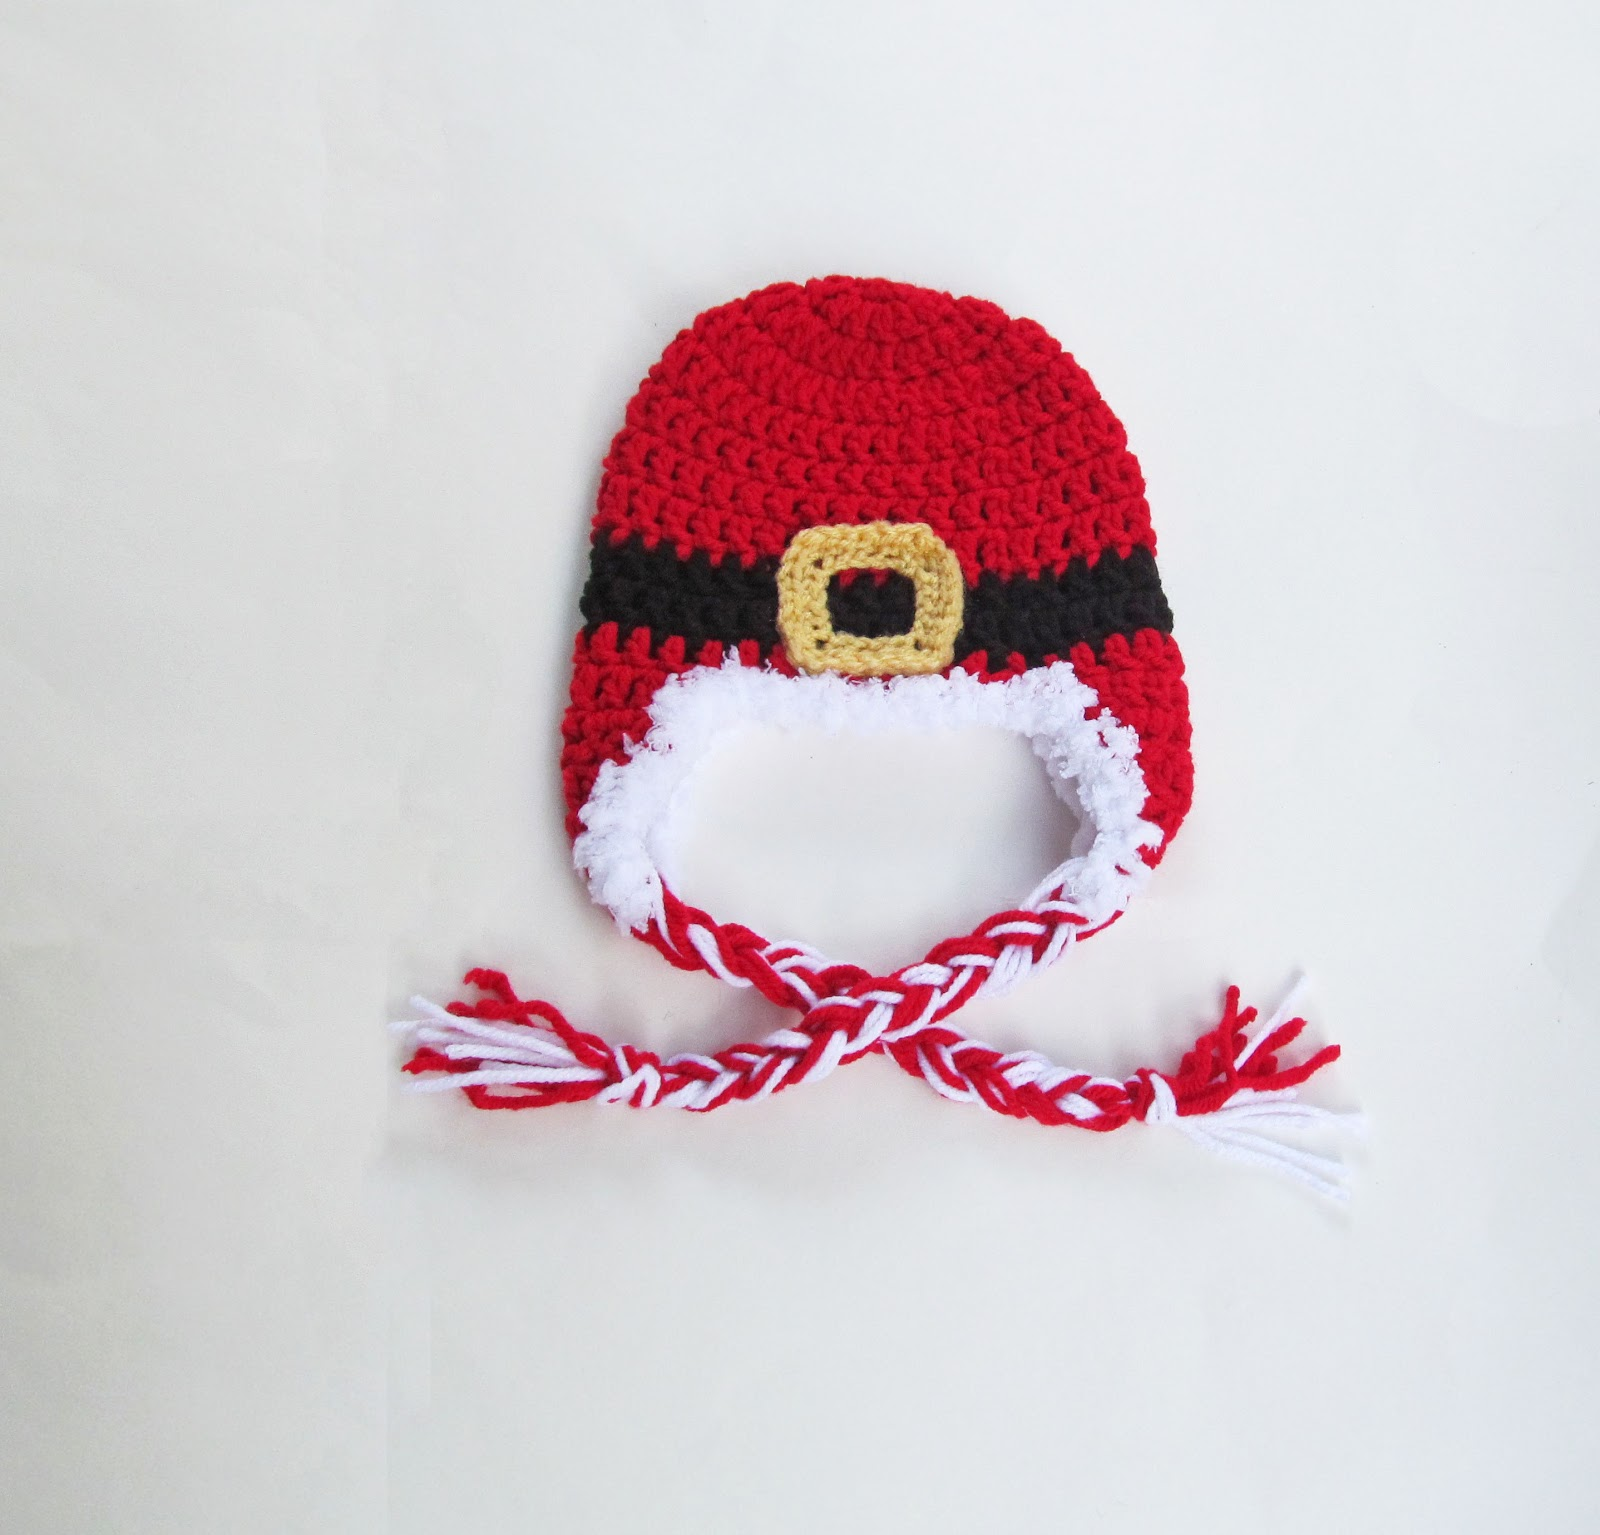 Free Crochet Pattern For Santa Hat : Tampa Bay Crochet: Free Crochet Pattern: Baby Santa ...